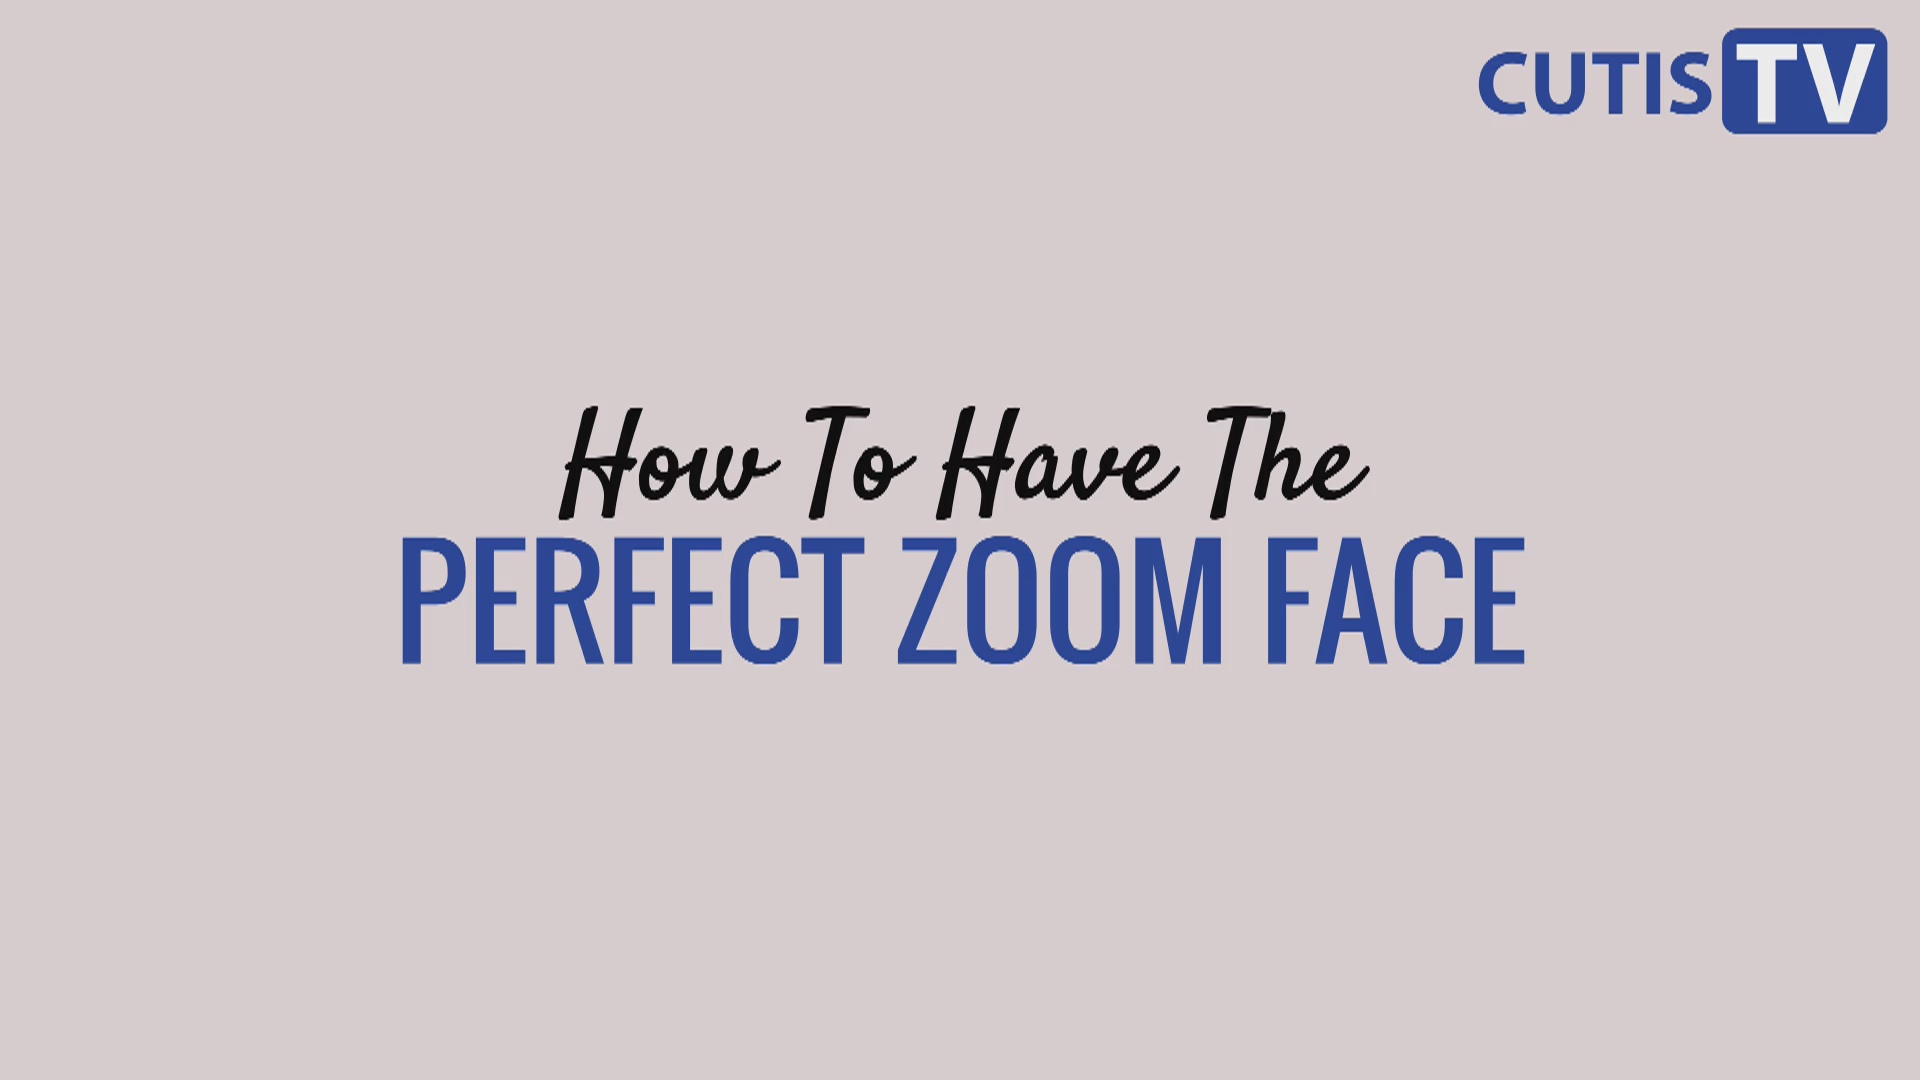 How to Have the Perfect Zoom Face